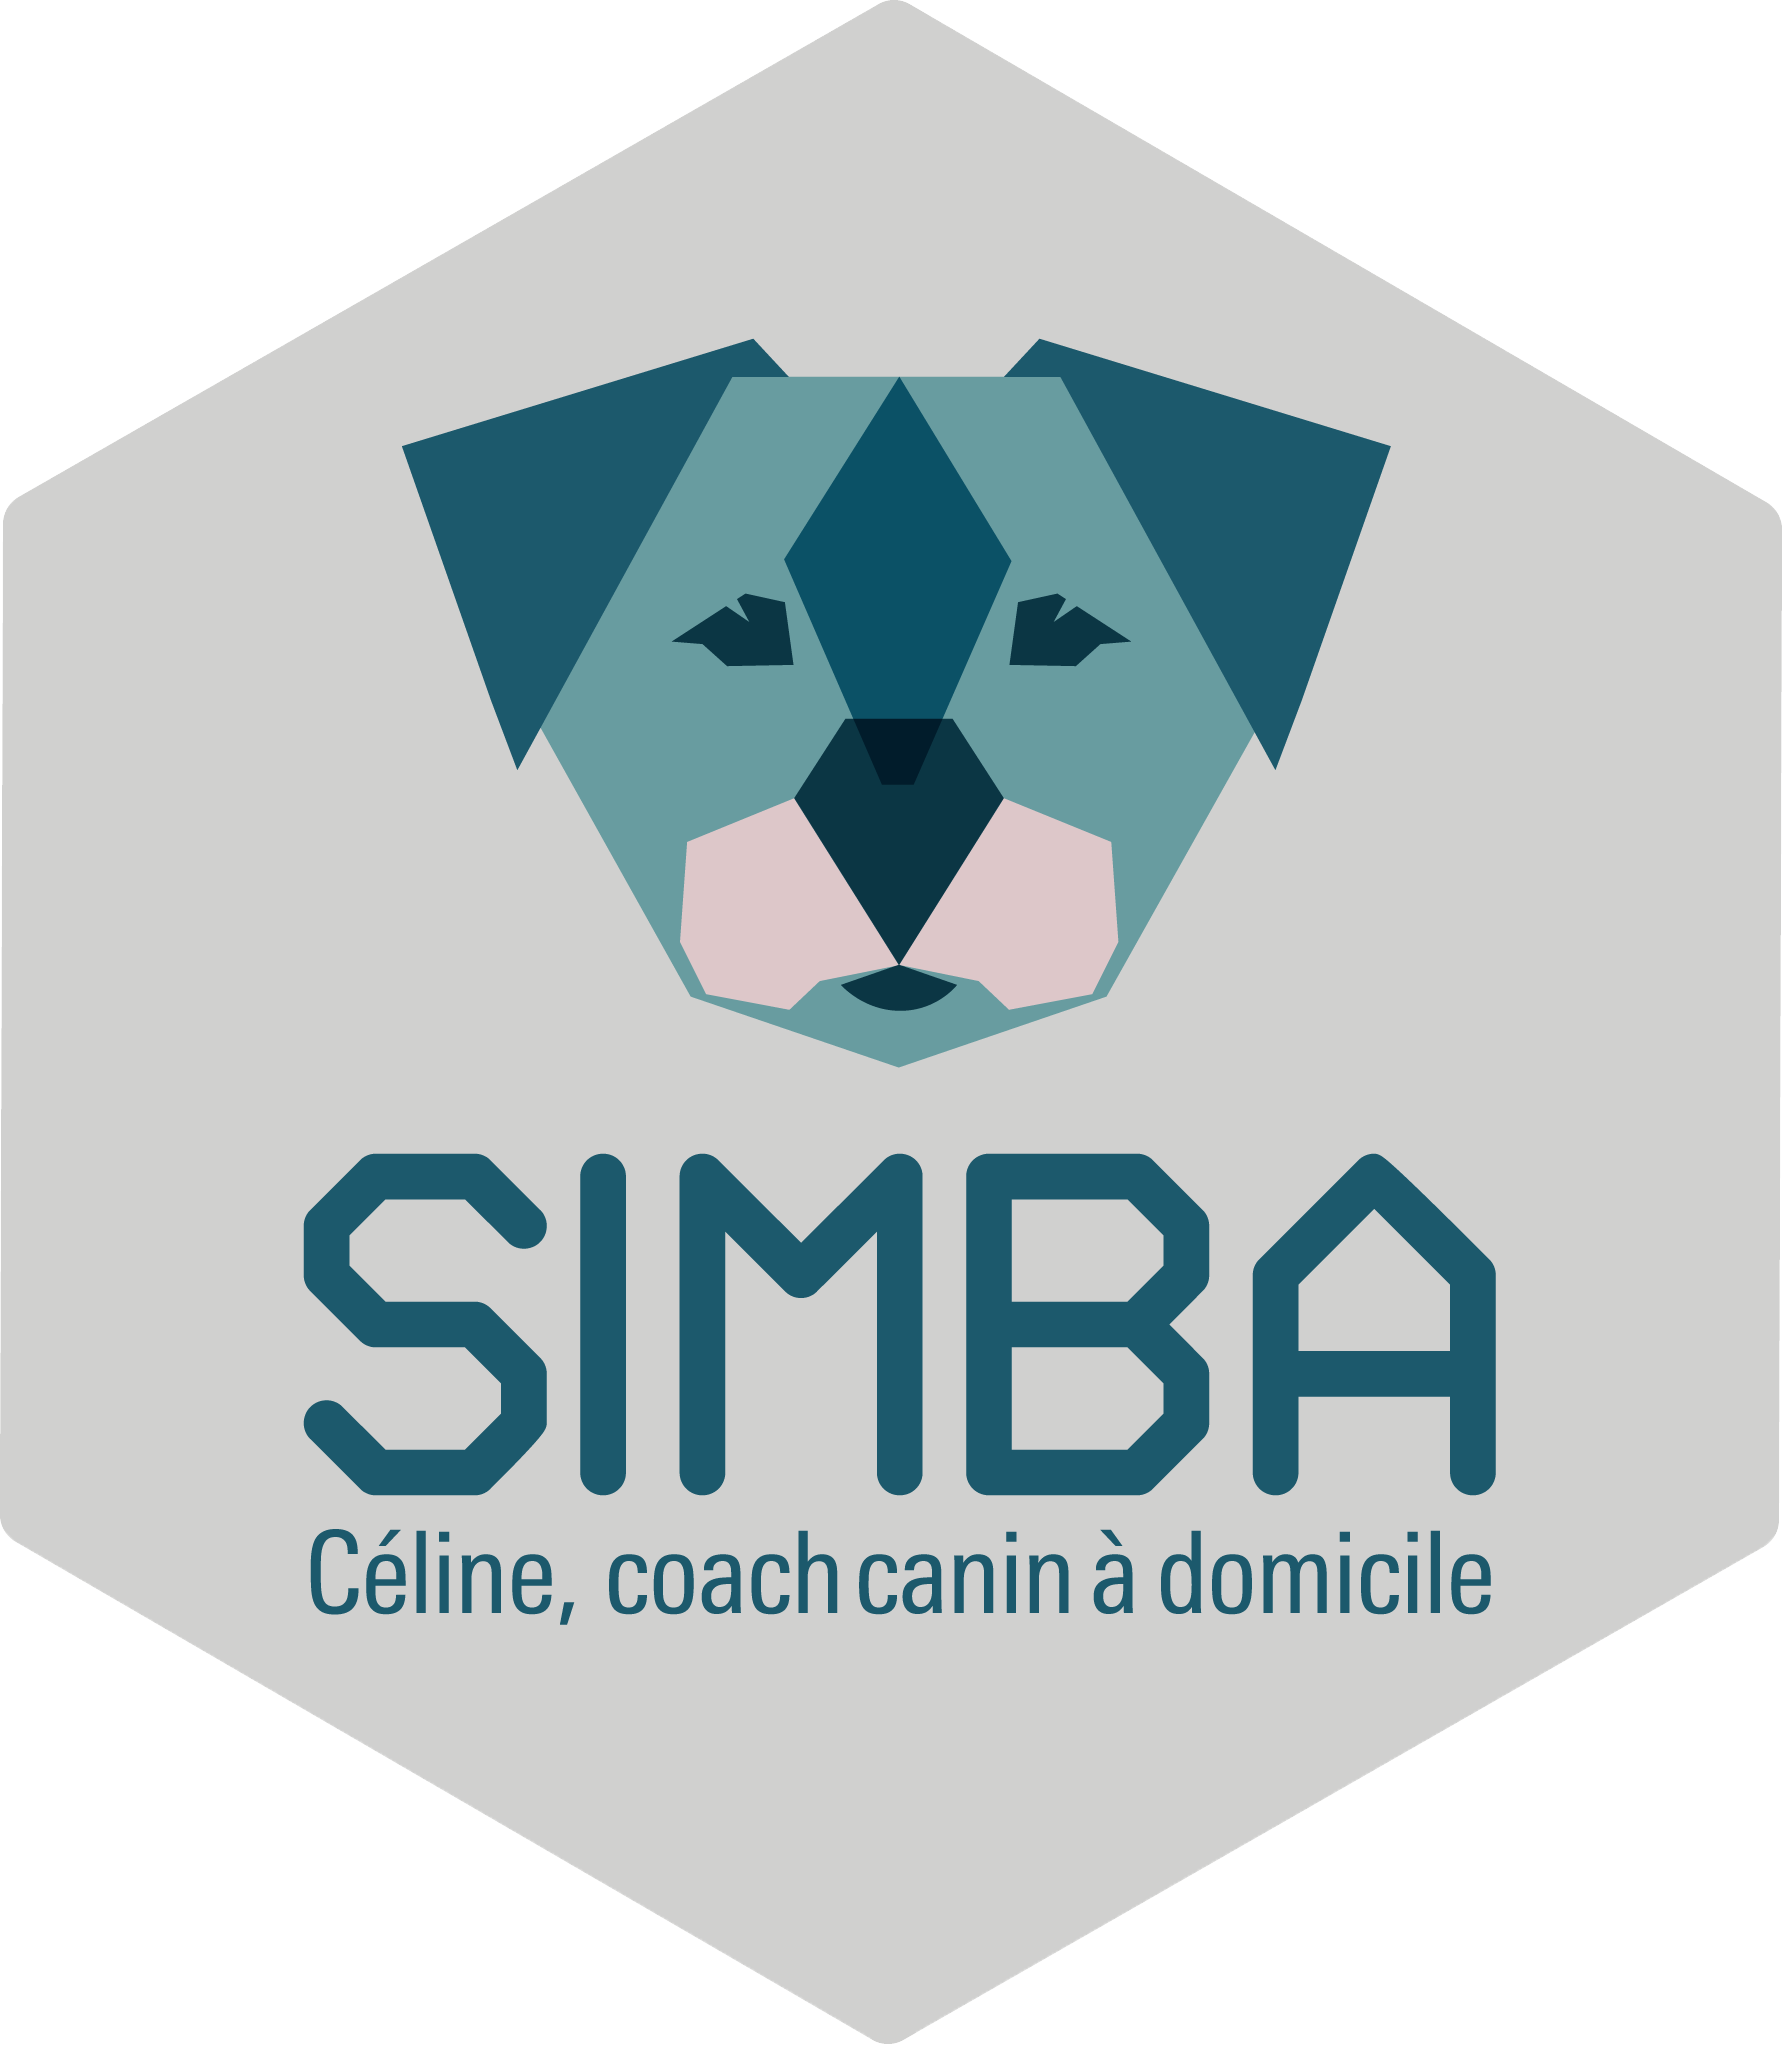 logo de simba-canin ®, education canine